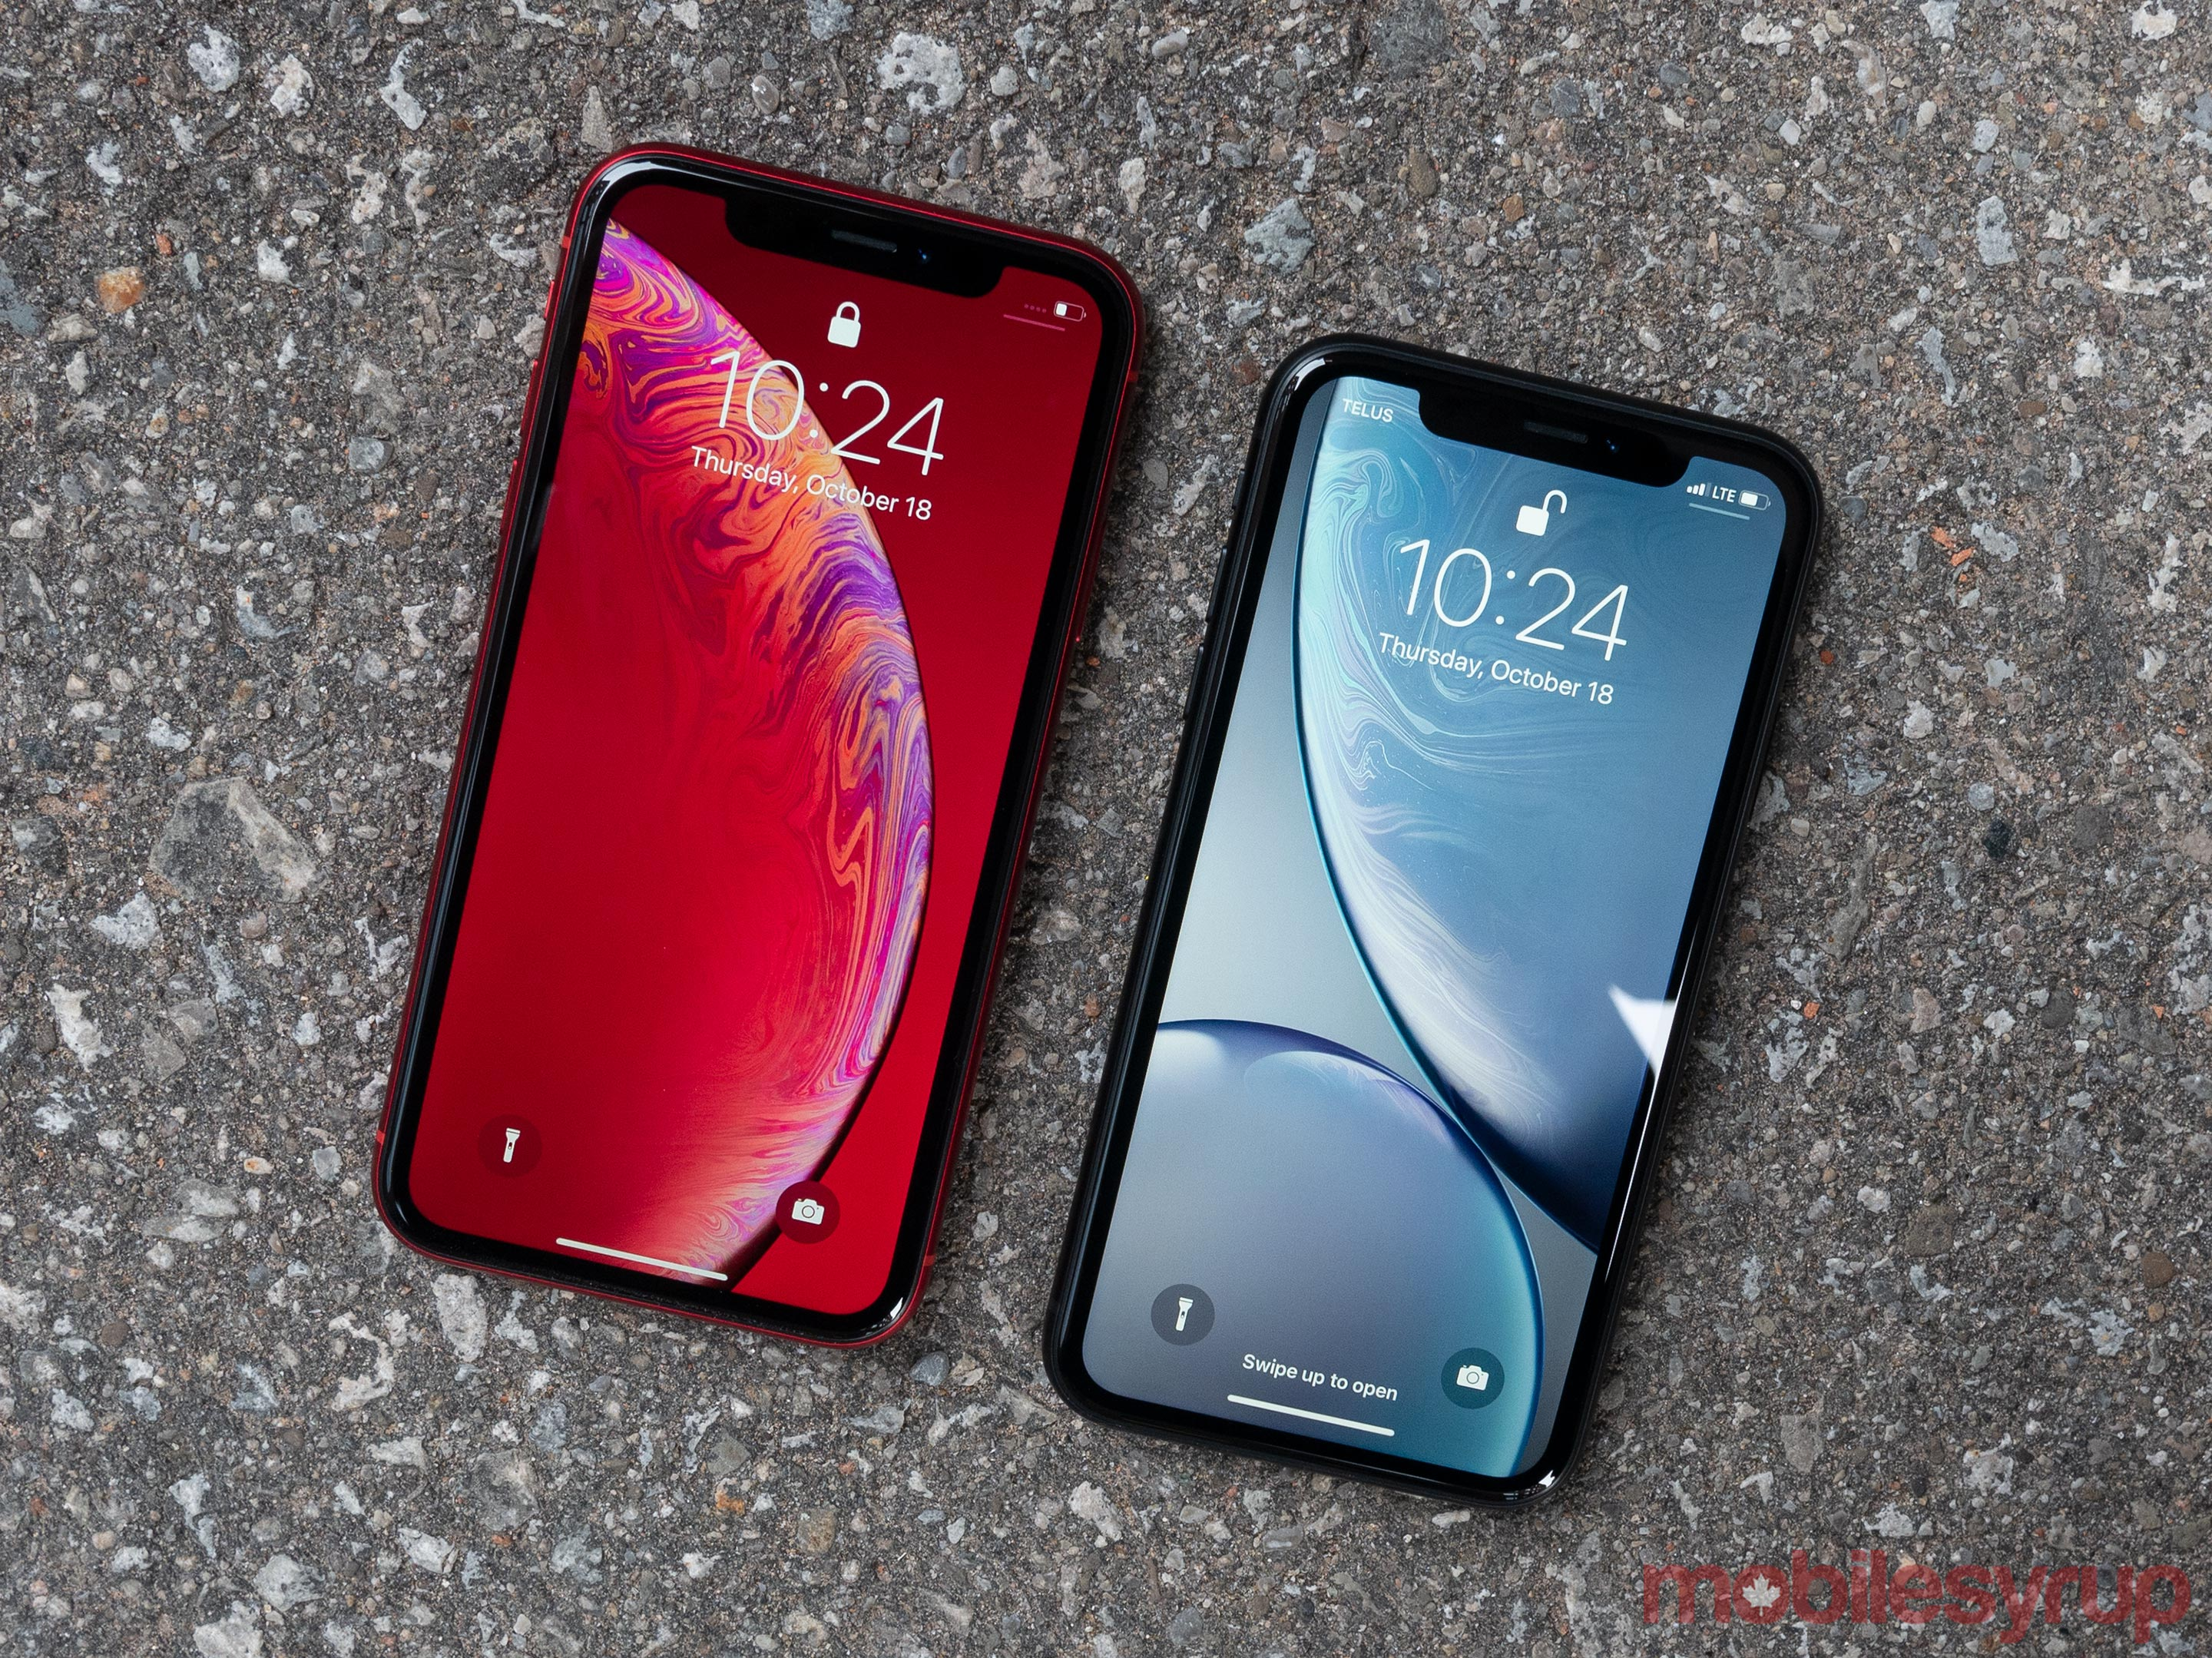 iPhone XR red and iPhone XR blue